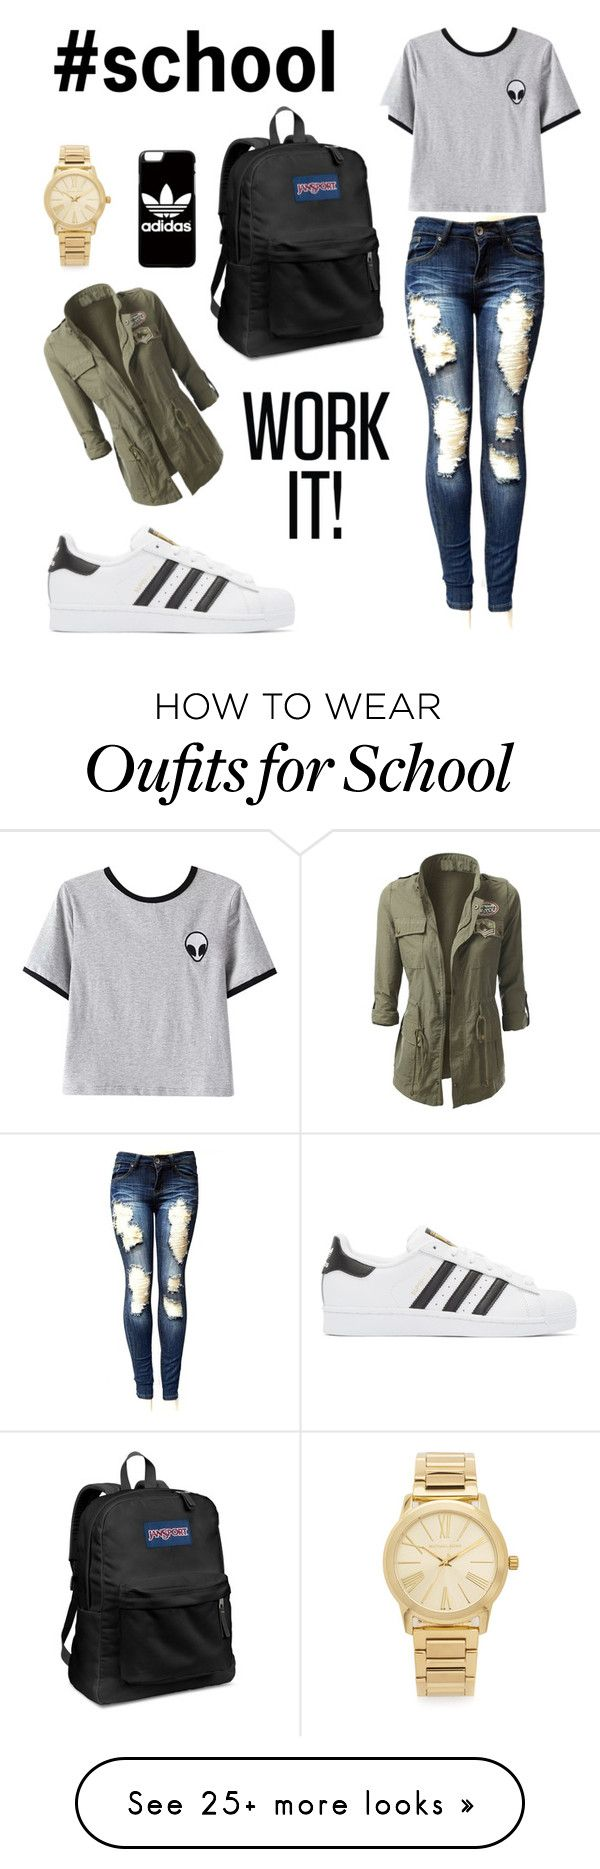 """#school"" by jeannette-palacios on Polyvore featuring adidas Originals, Chicnova Fashion, JanSport, adidas and Michael Kors"